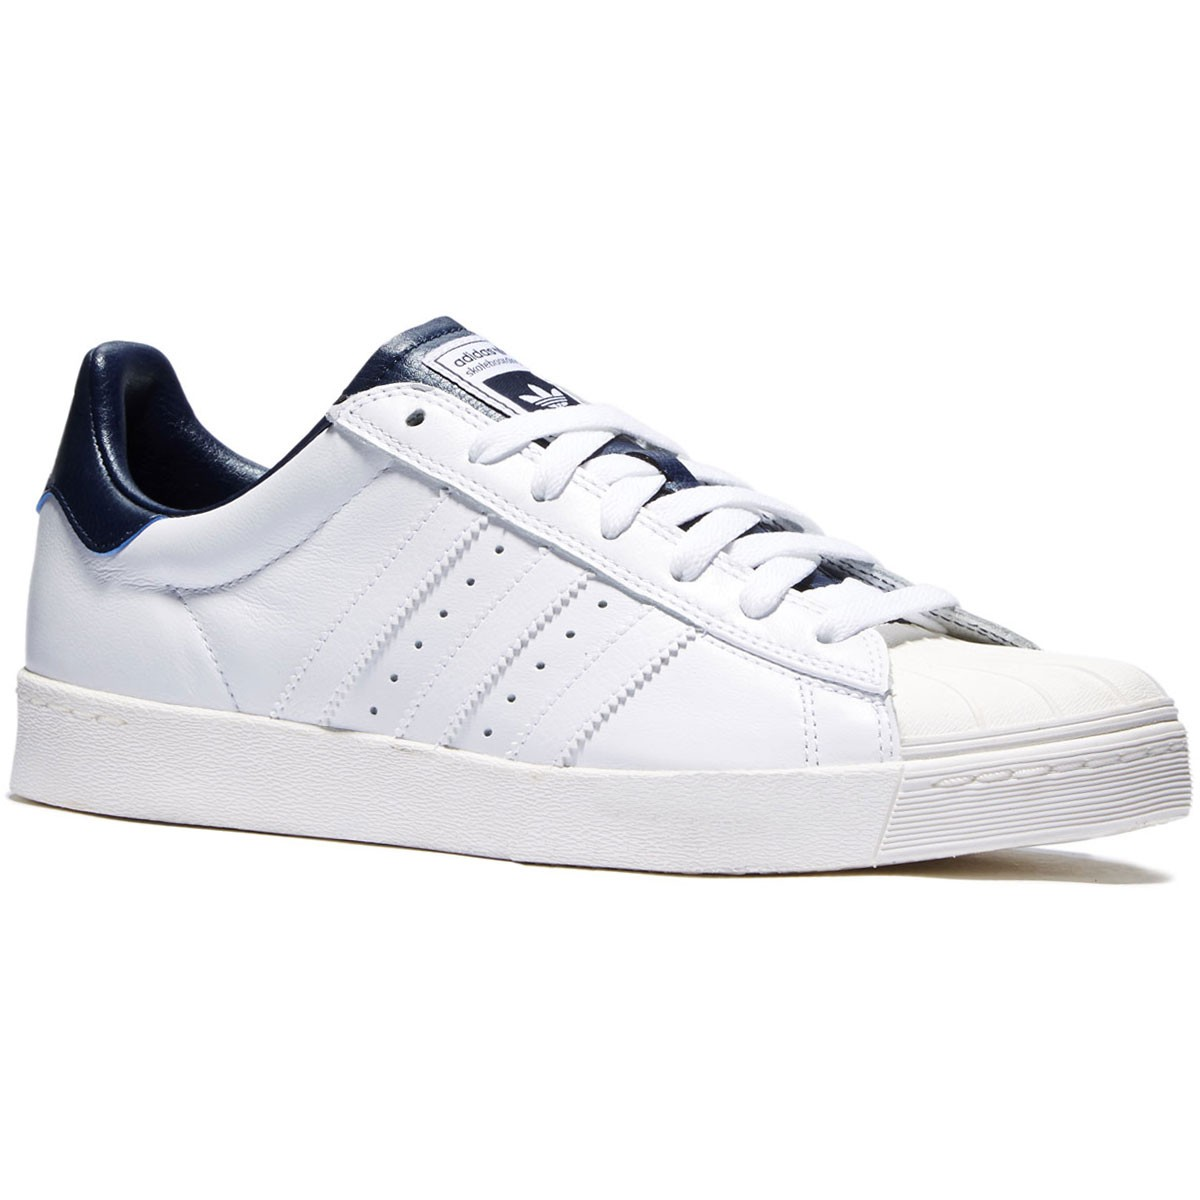 Cheap Adidas Superstar 2 Dark Blue White Weave Pack Unisex Sports